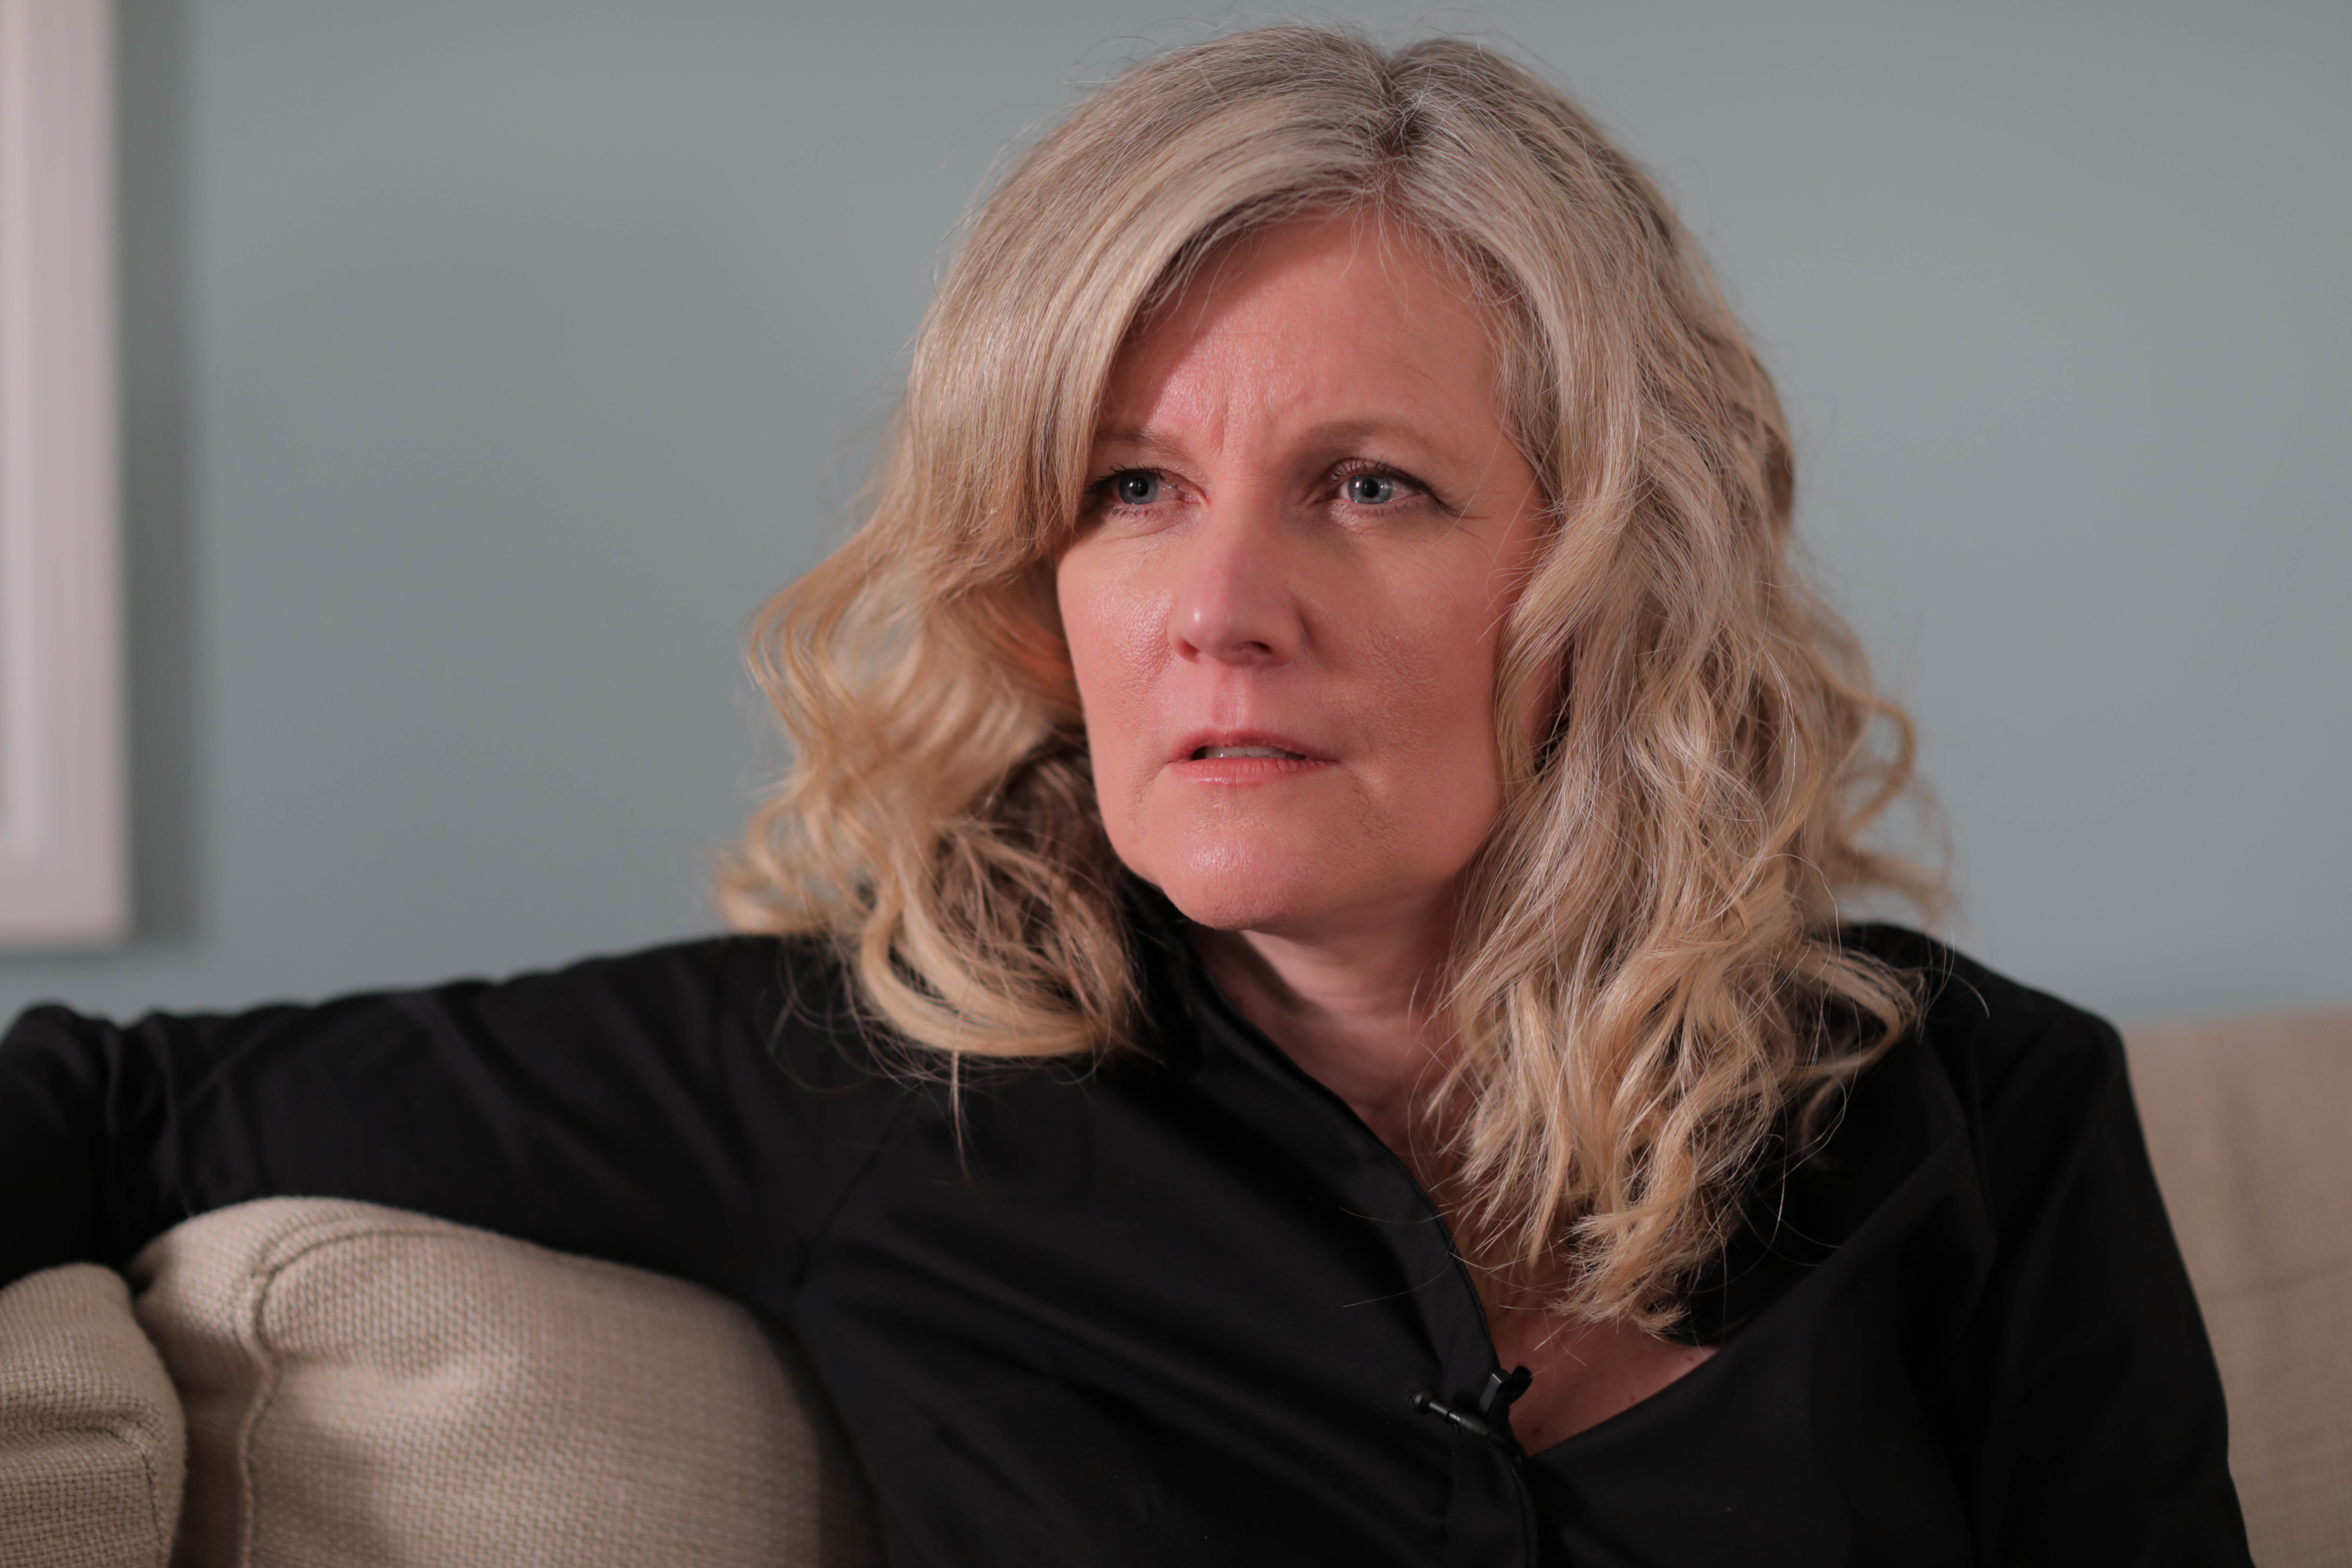 Psychologist Lara Sigurdson, who treats many OPP officers at her private practice in Barrie, says officers often become targets of bullying and harassment if they bring a complaint forward. (John Badcock/CBC)